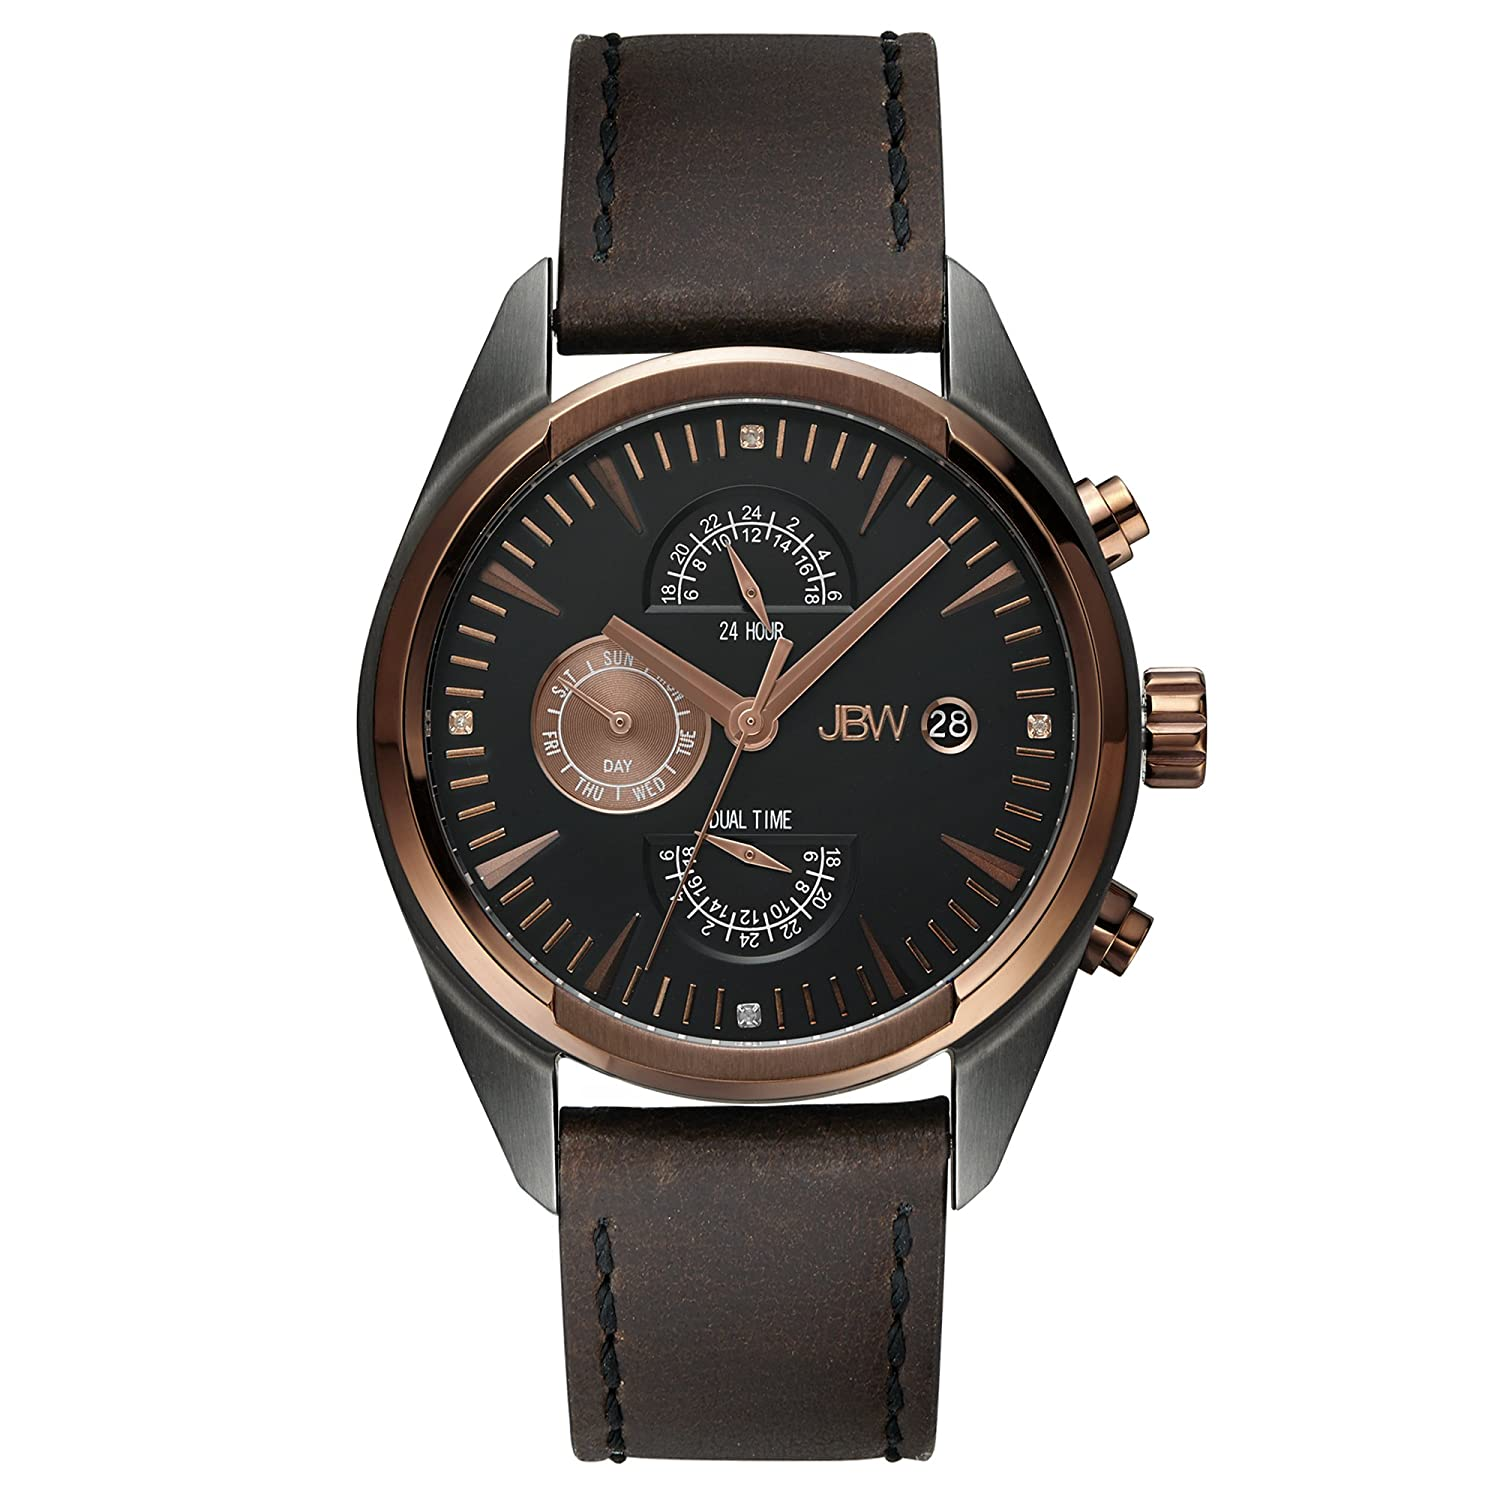 Amazon.com: JBW Luxury Mens Woodall Diamond Wrist Watch with Leather Bracelet: Watches